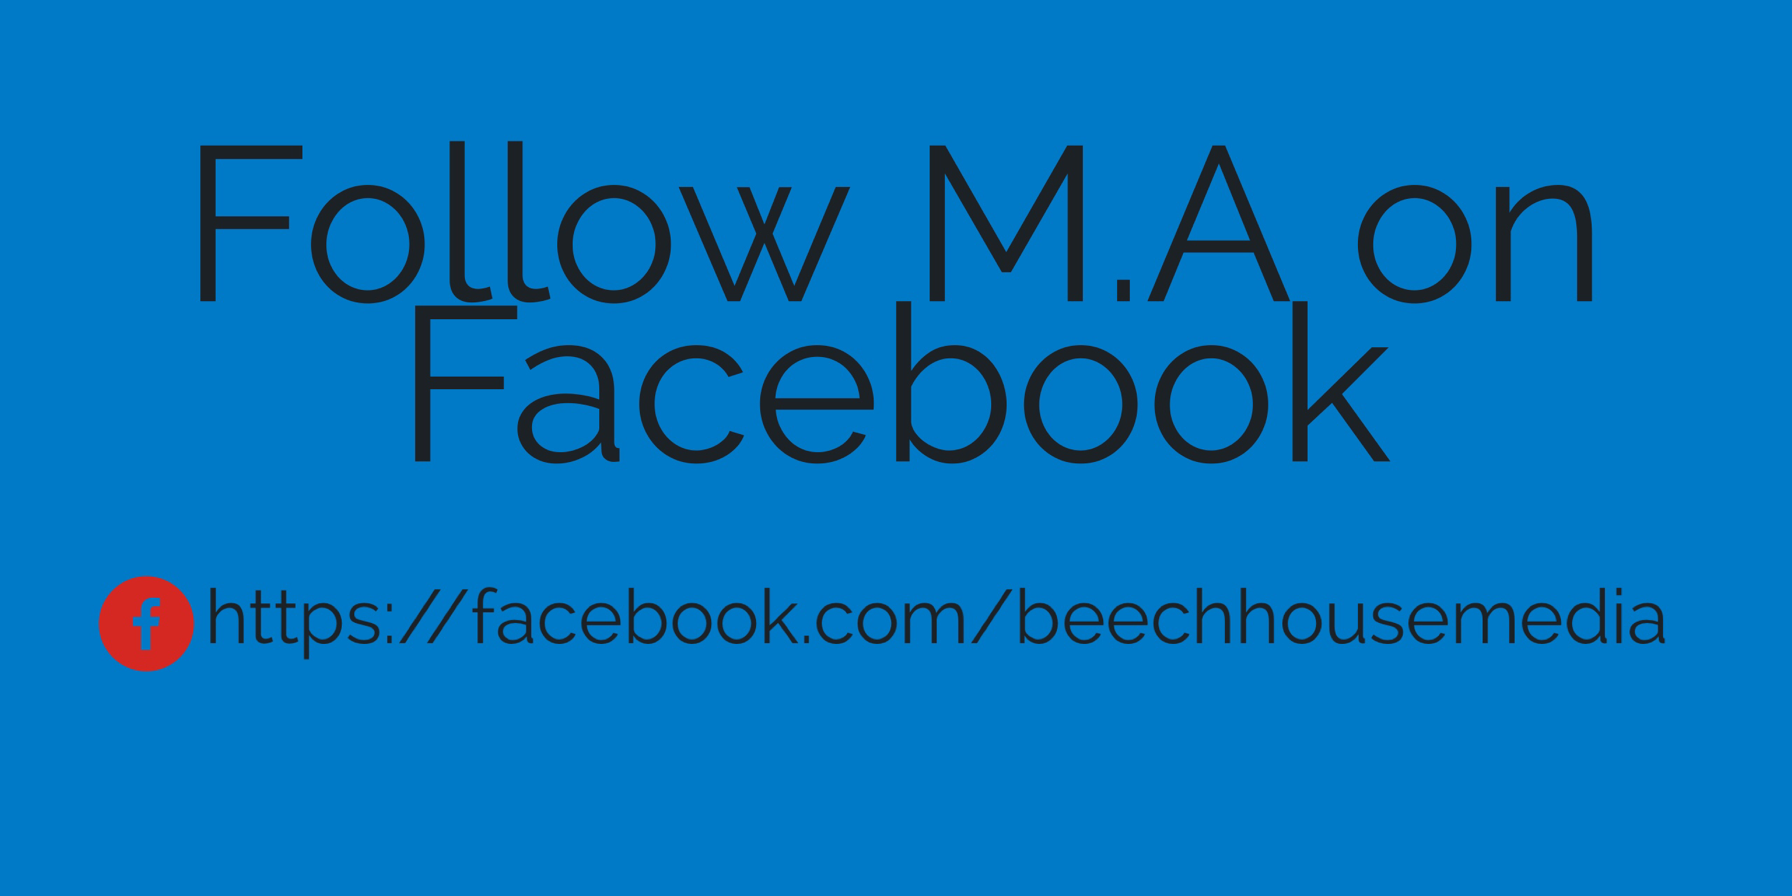 follow beechhouse media on Facebook